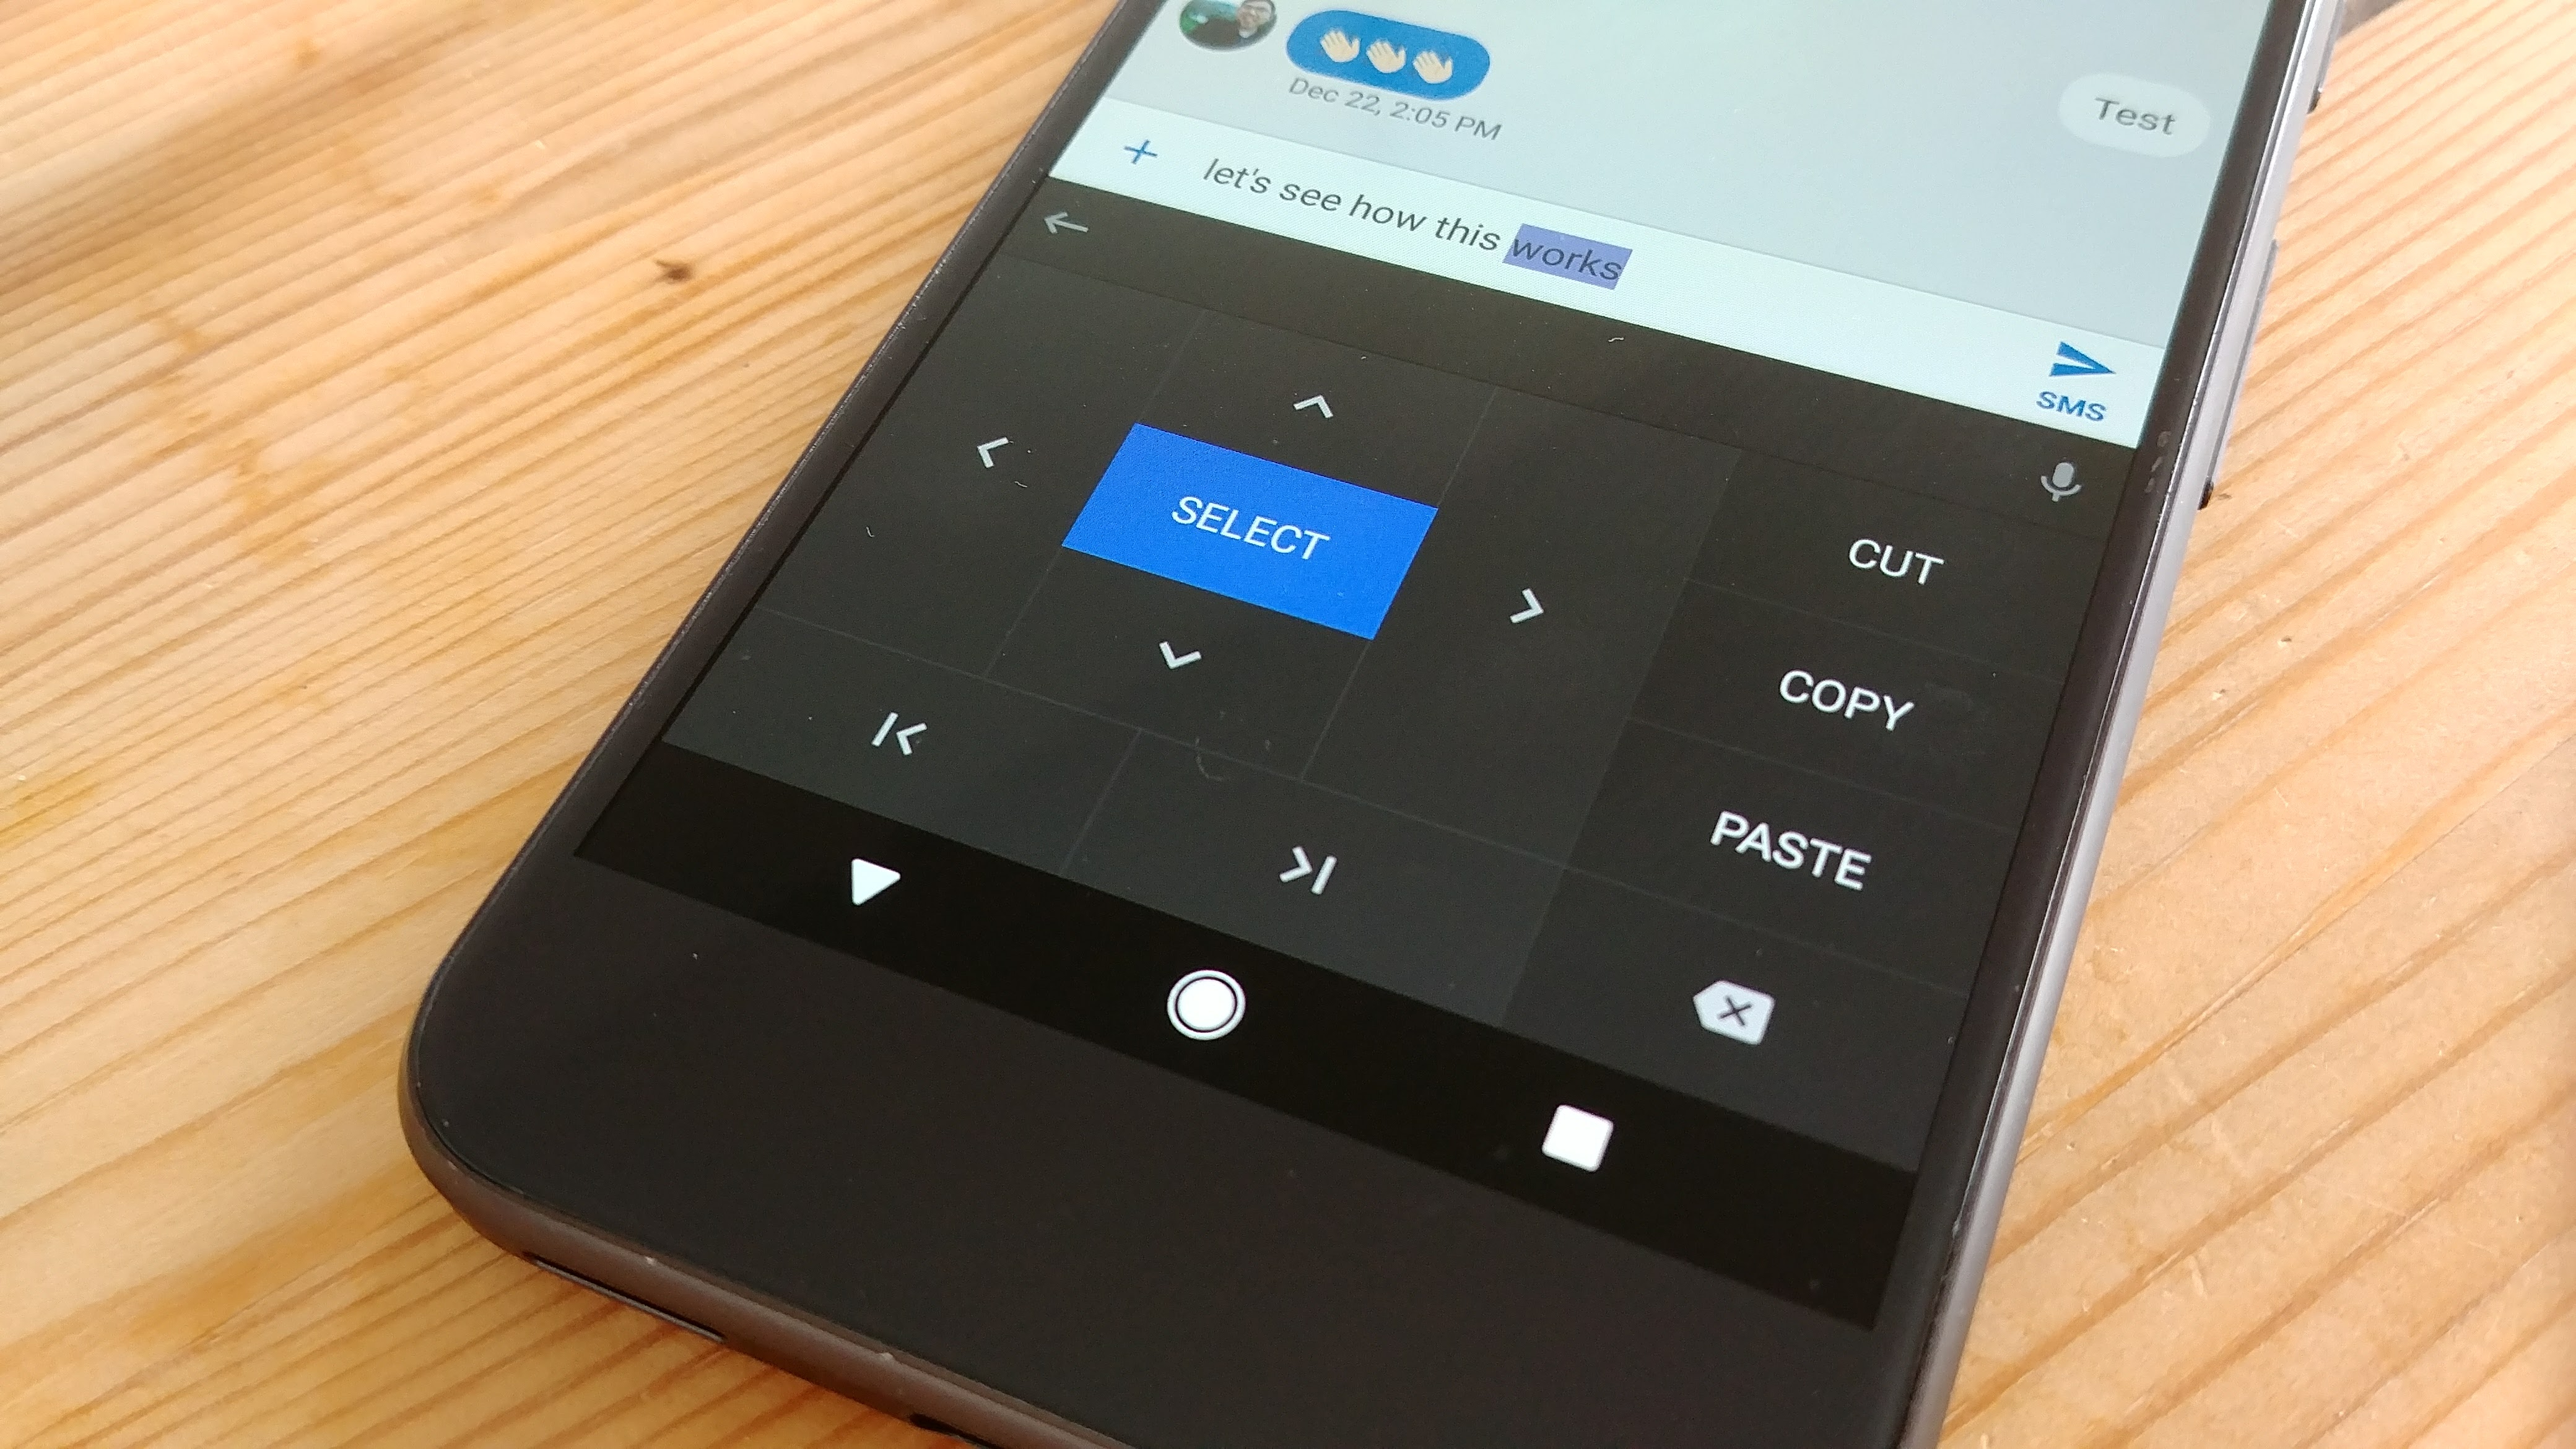 Google is making it easier to edit text on your Android